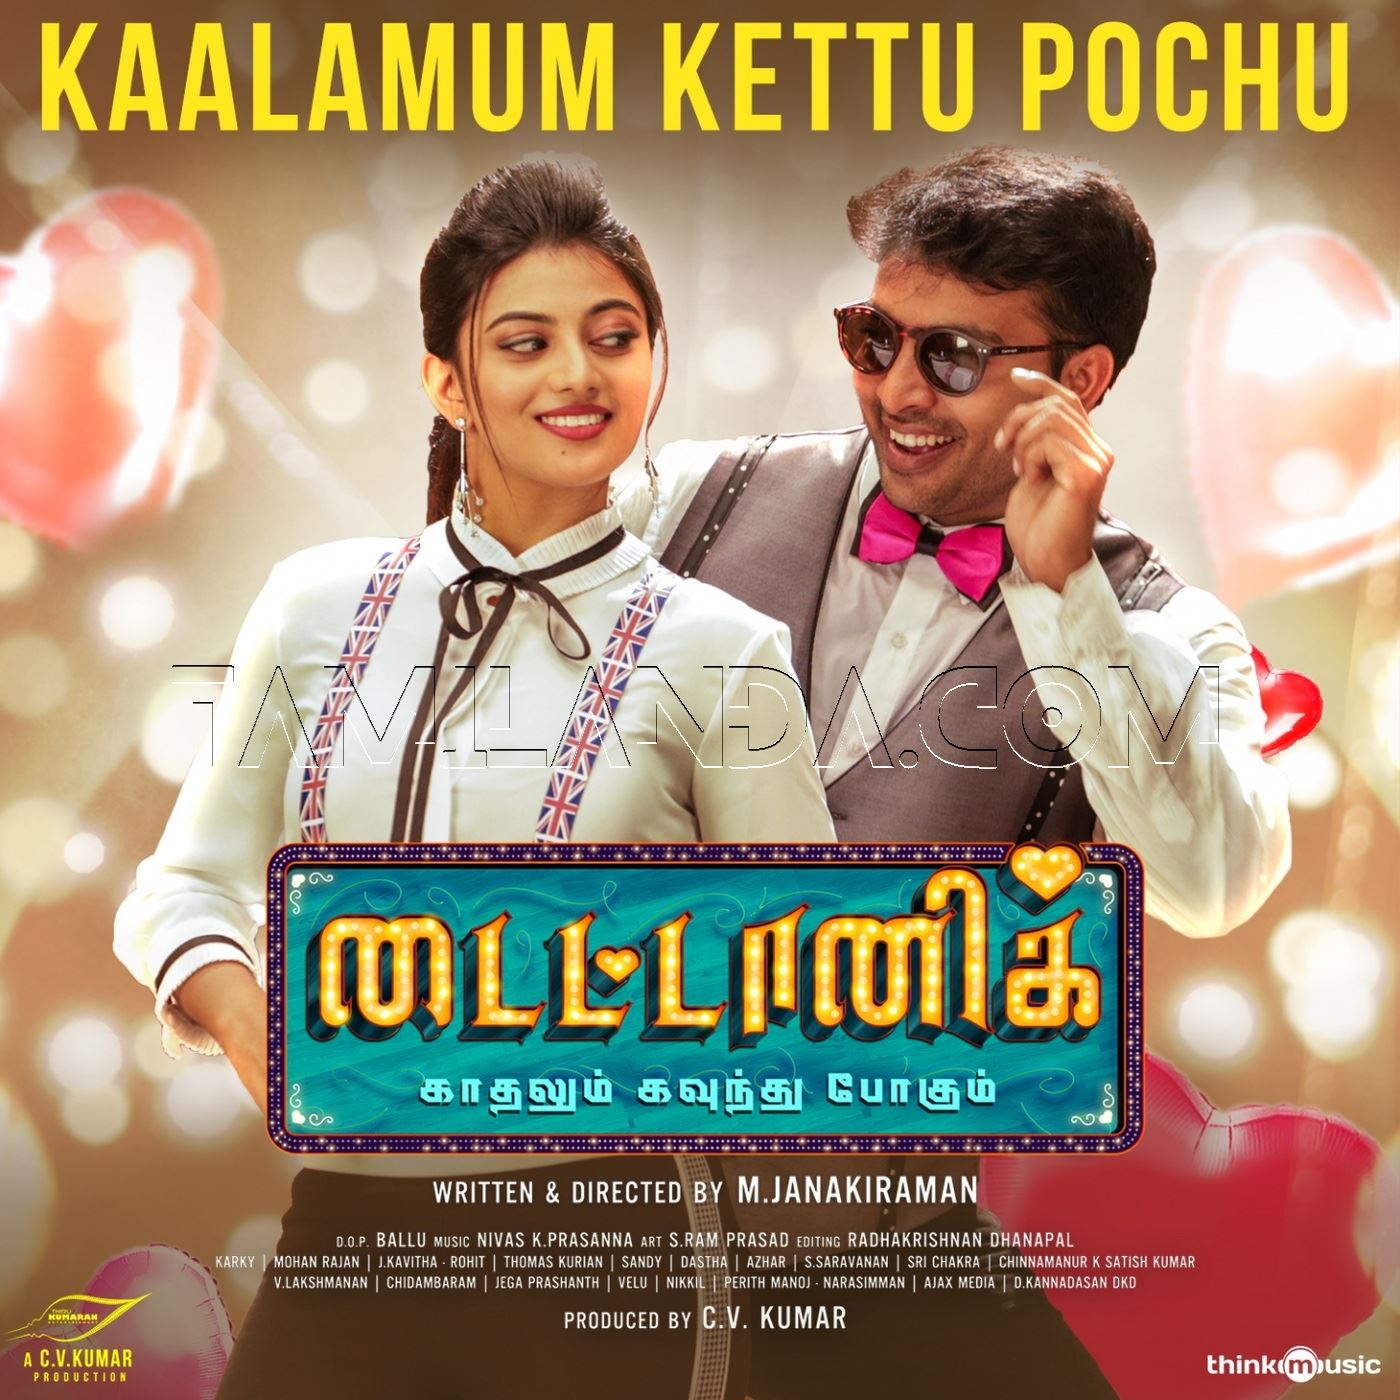 Kaalamum Kettu Pochu (From Titanic) – Single FLAC Song